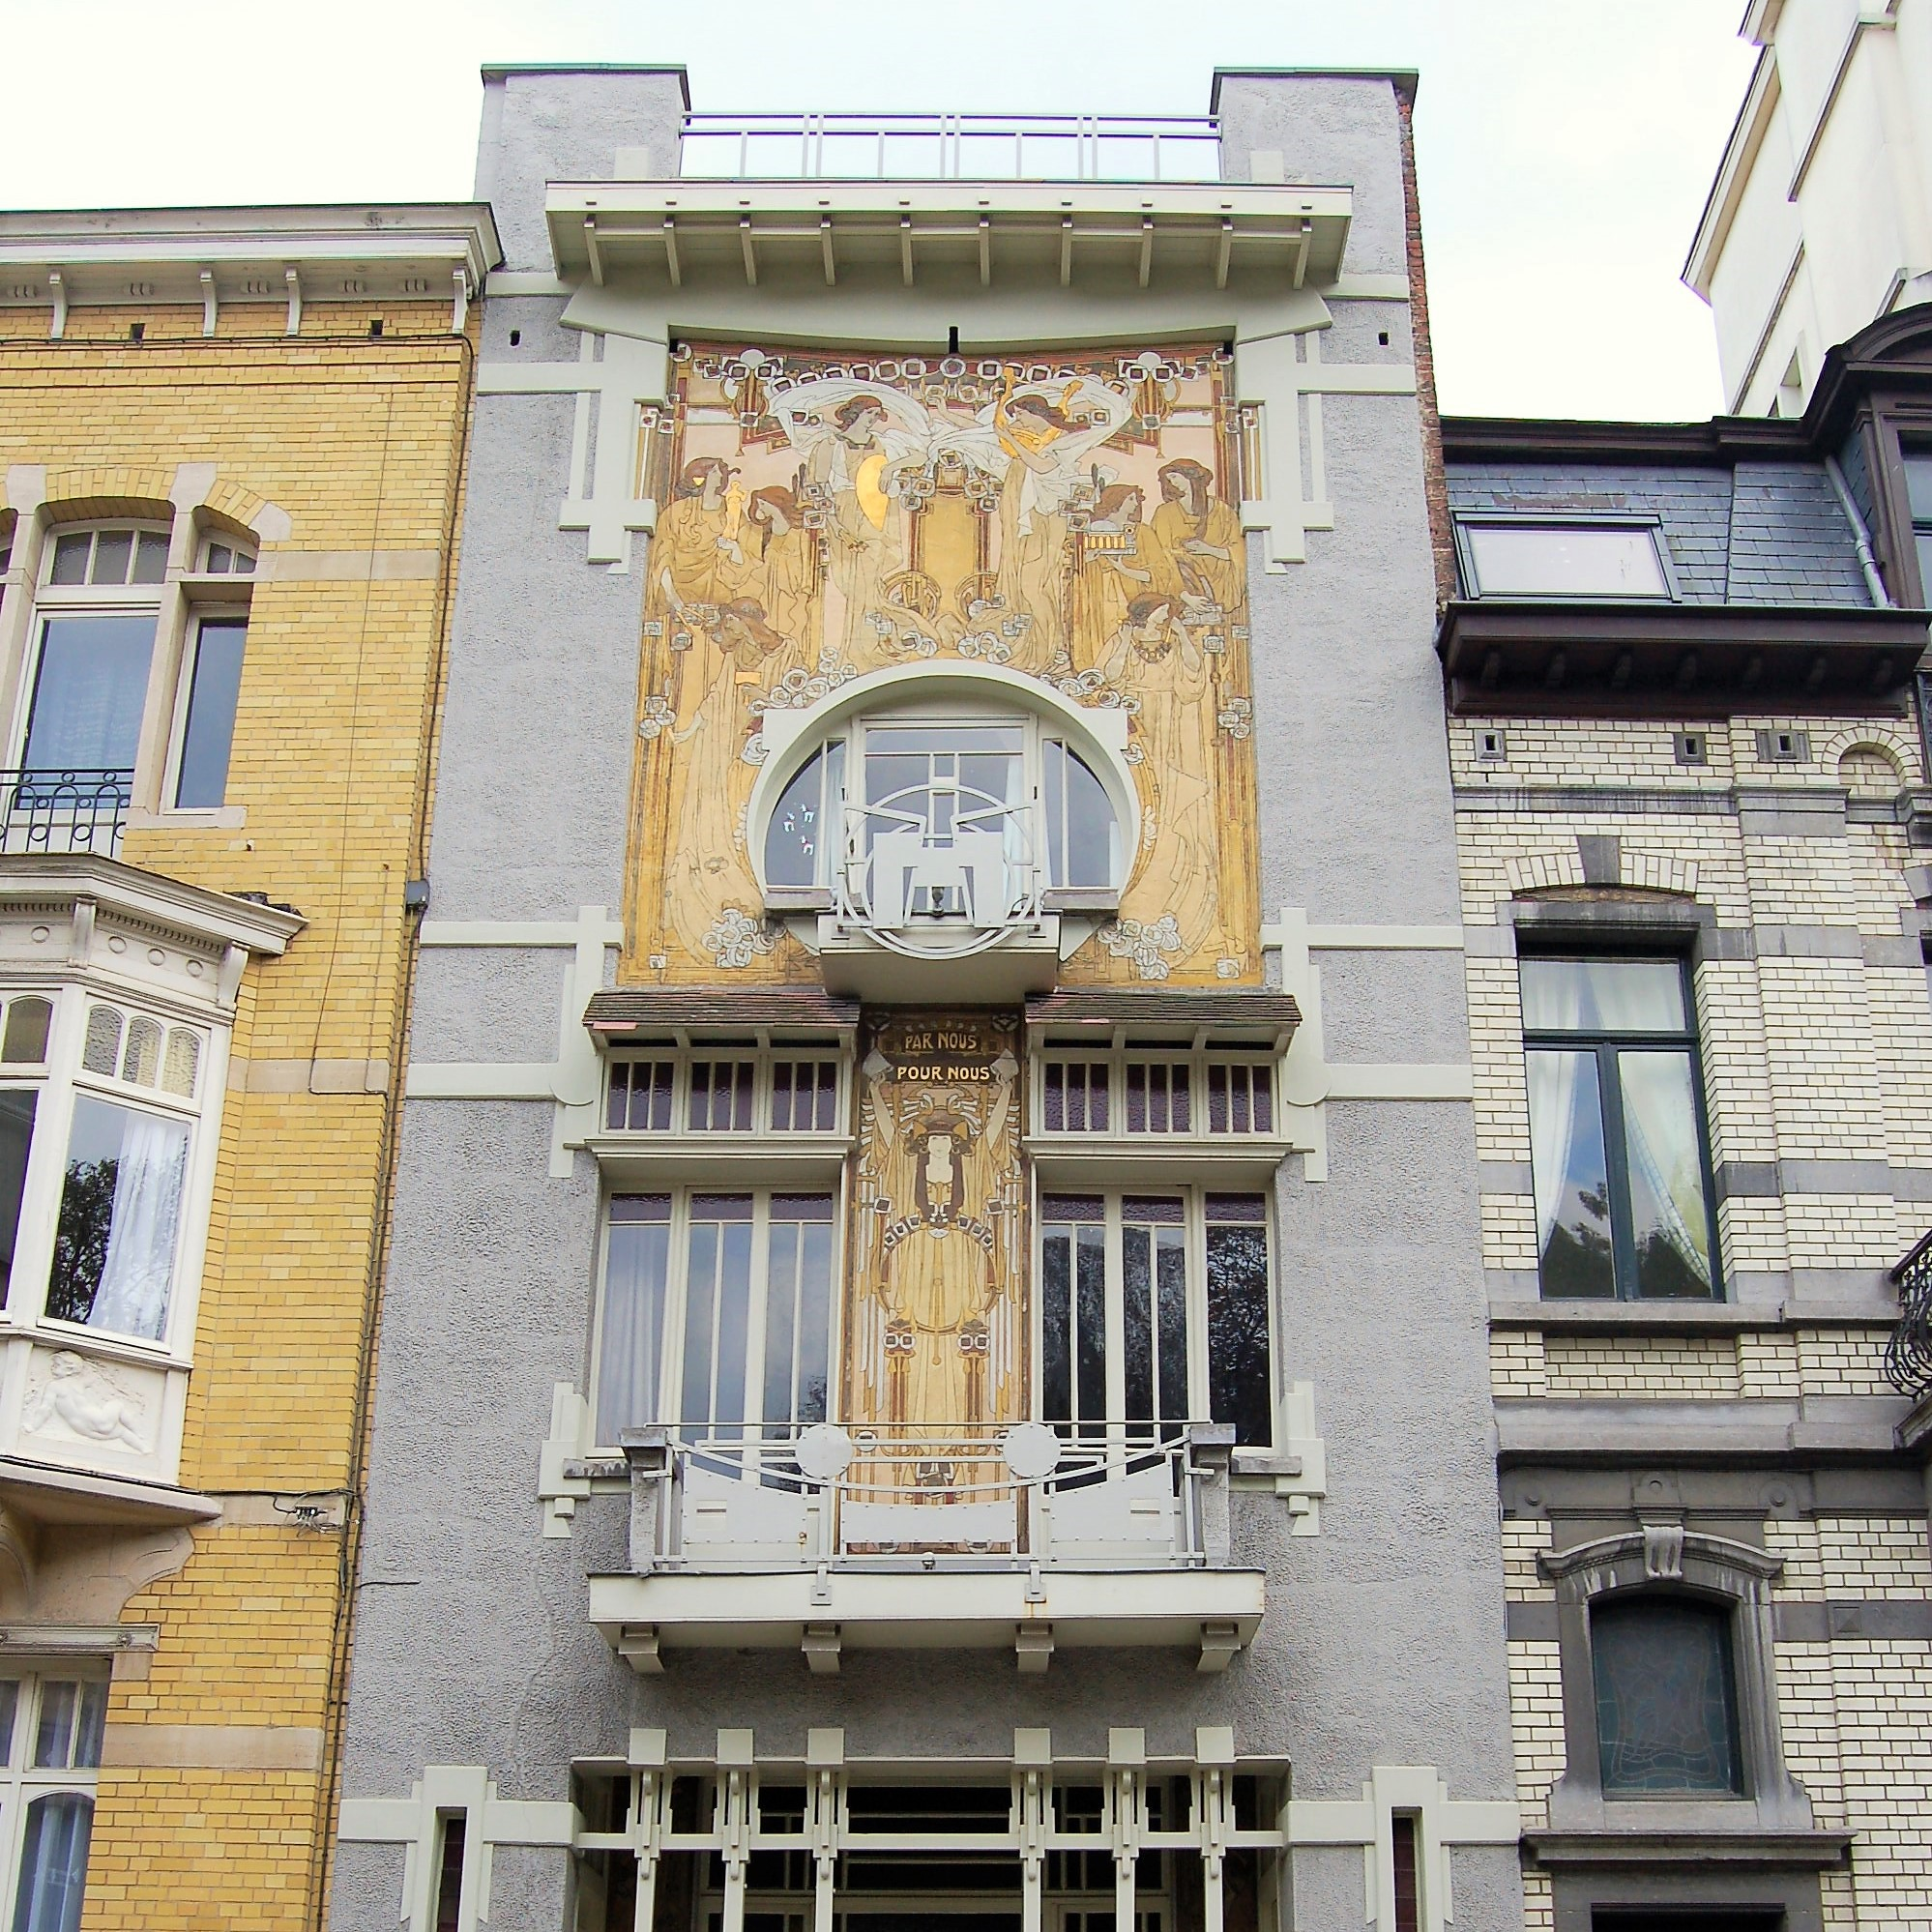 Designed by Paul Cauchie in 1905 for his personal residence, known as the Cauchie House. Brussels, Belgium